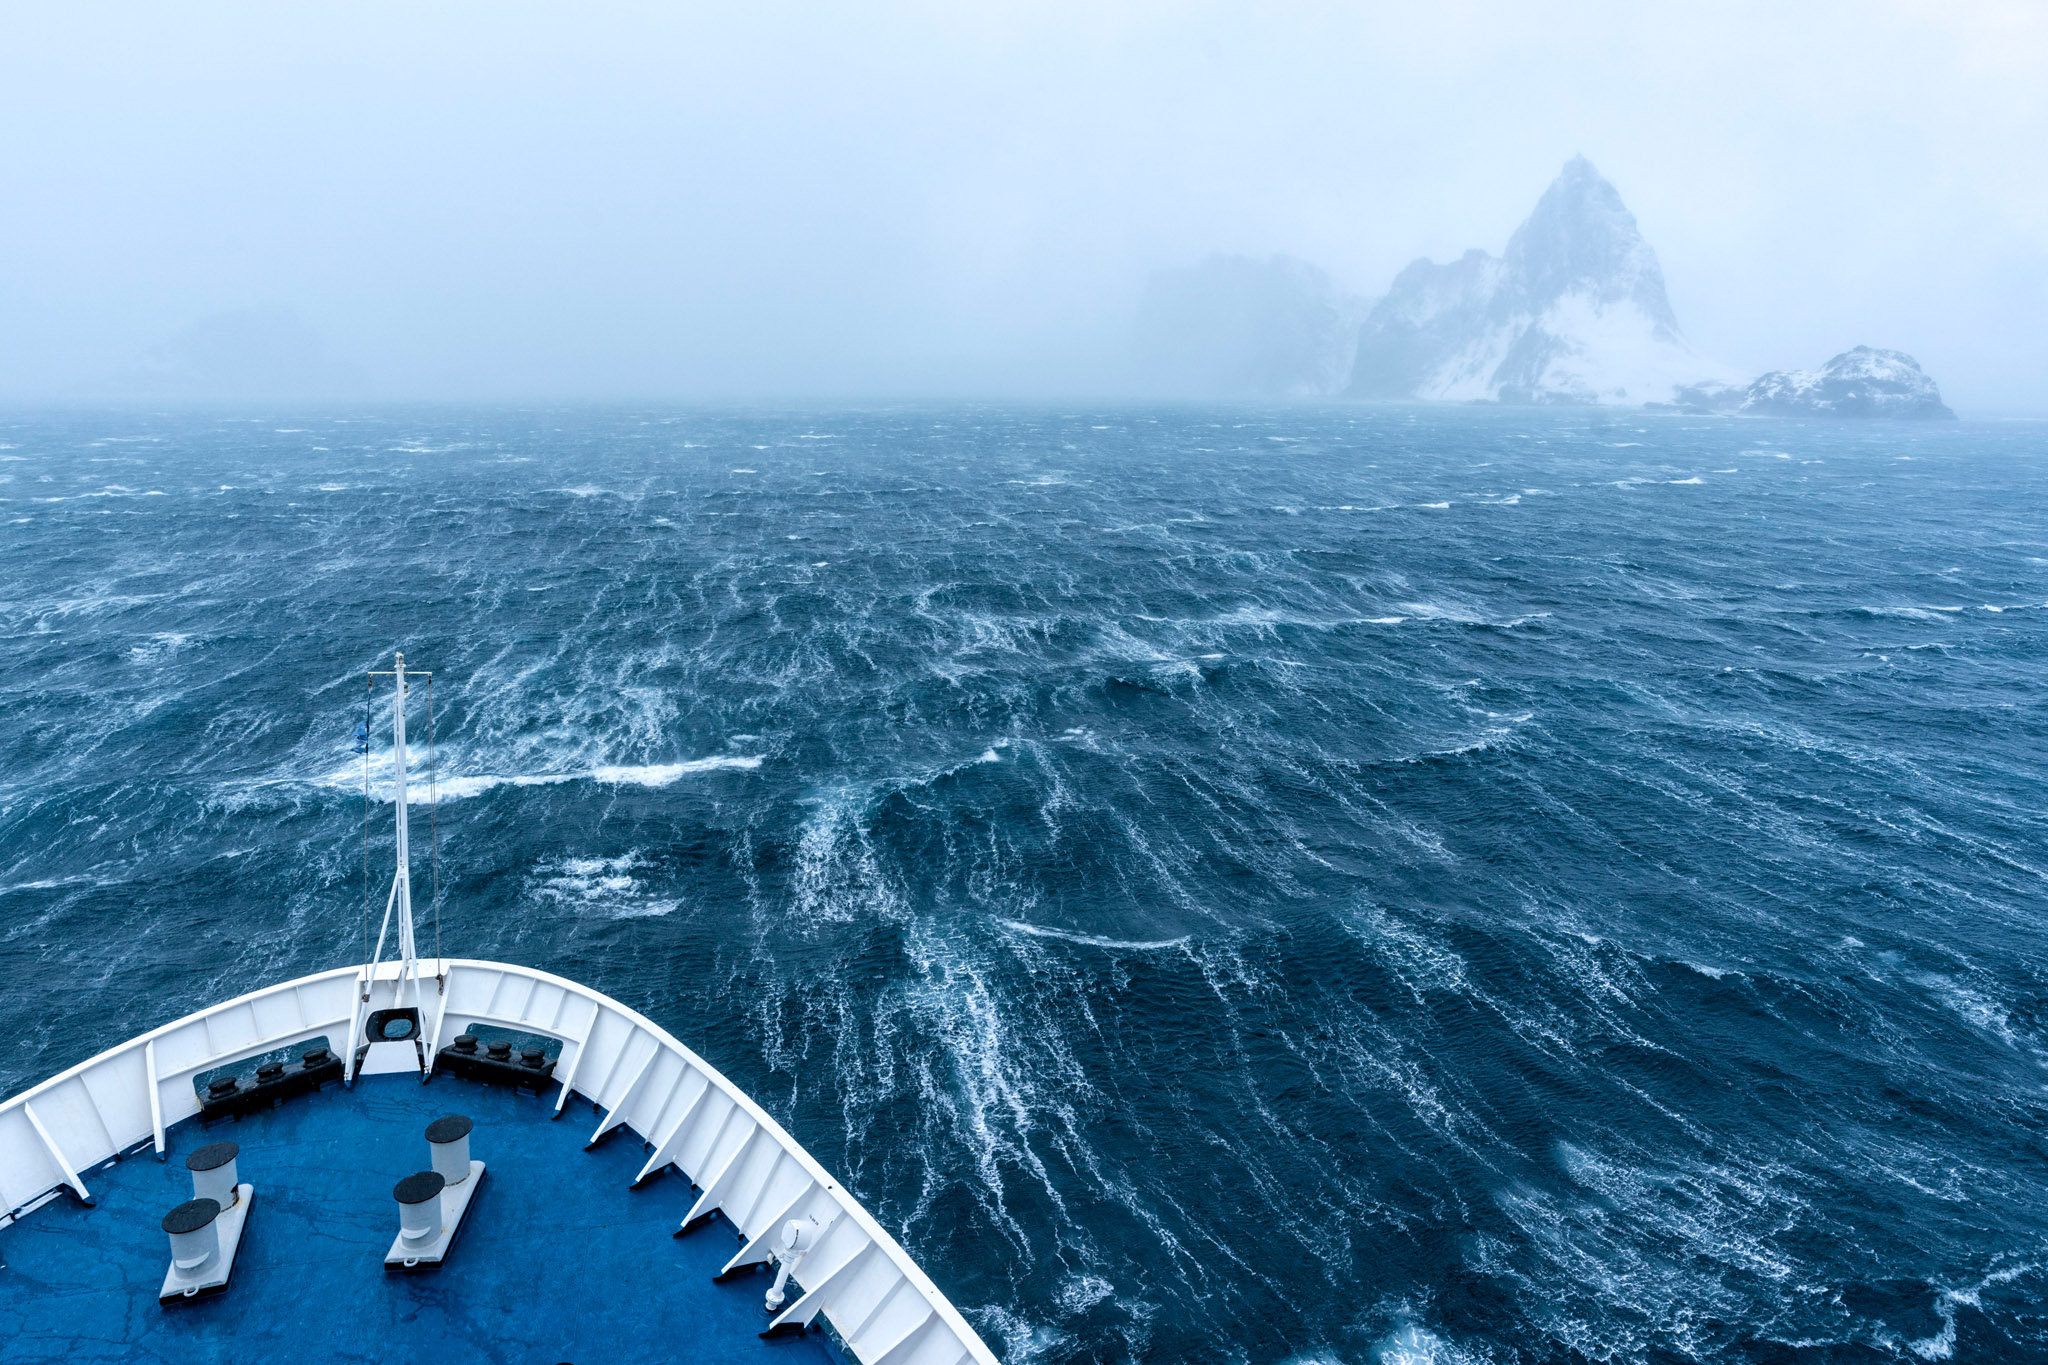 Our first sighting of Antarctica at Elephant Island amidst intense 75MPH winds. Shot w/ Sony A9, 16-35 f/2.8.